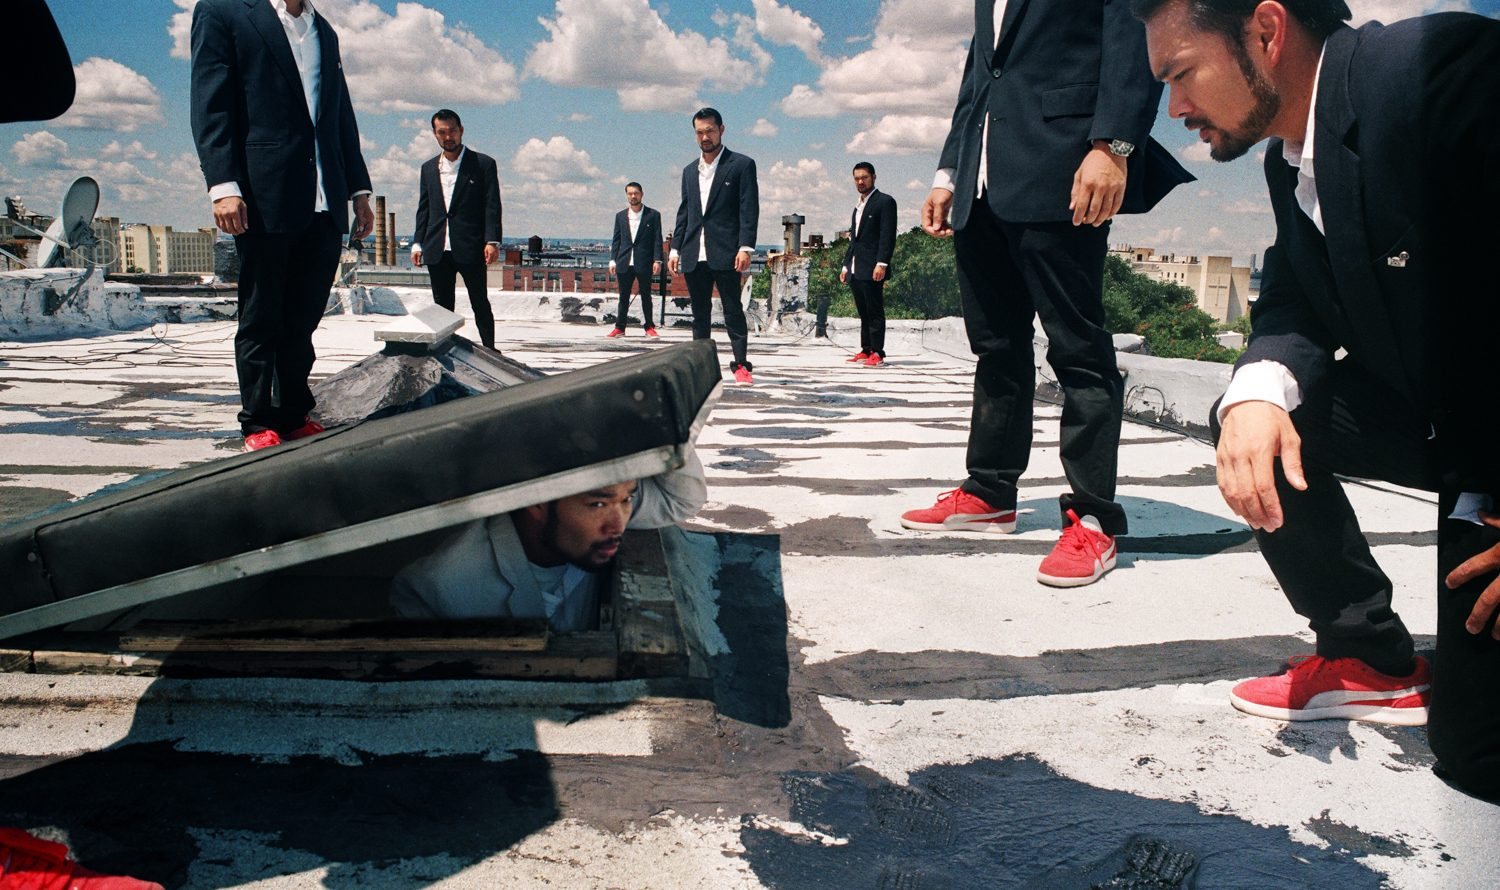 Shinobi No Kame - A group of dark suited Asian men standing on a roof, staring at an Asian man emerging in a white suit.